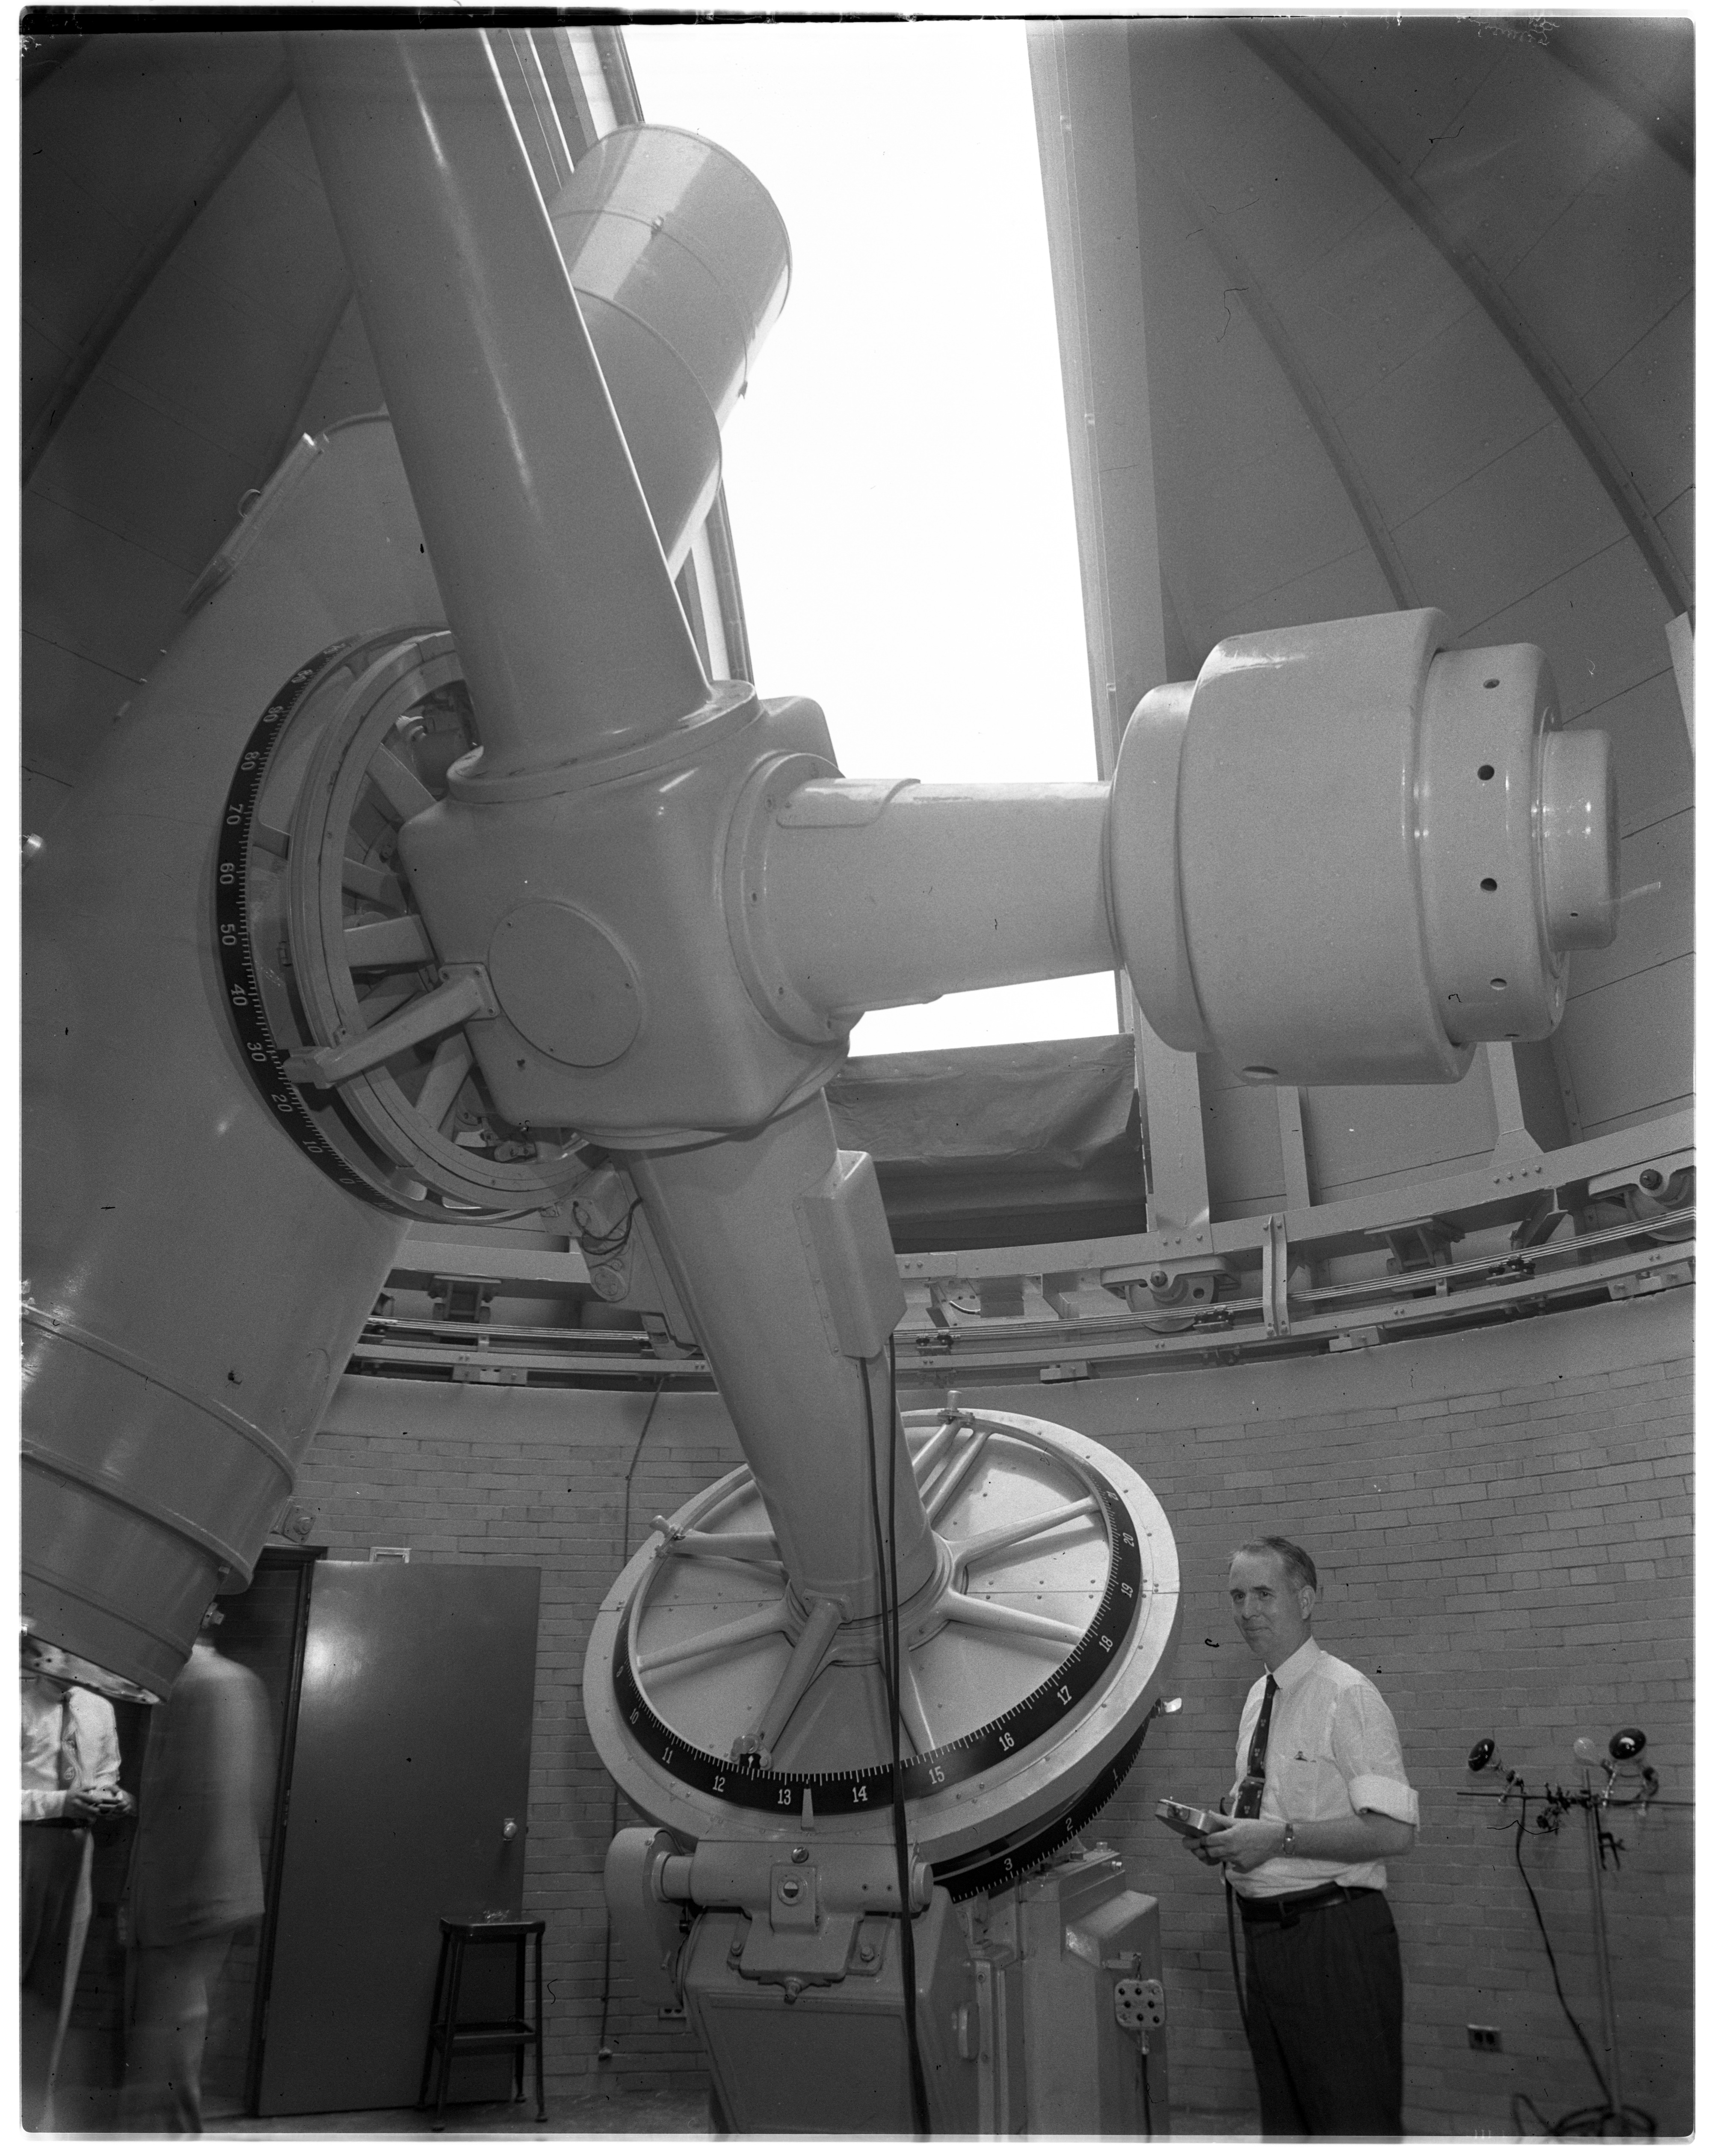 Dedication of Curtis-Schmidt Telescope, Portage Lake Observatory, Peach Mountain, June 1950 image